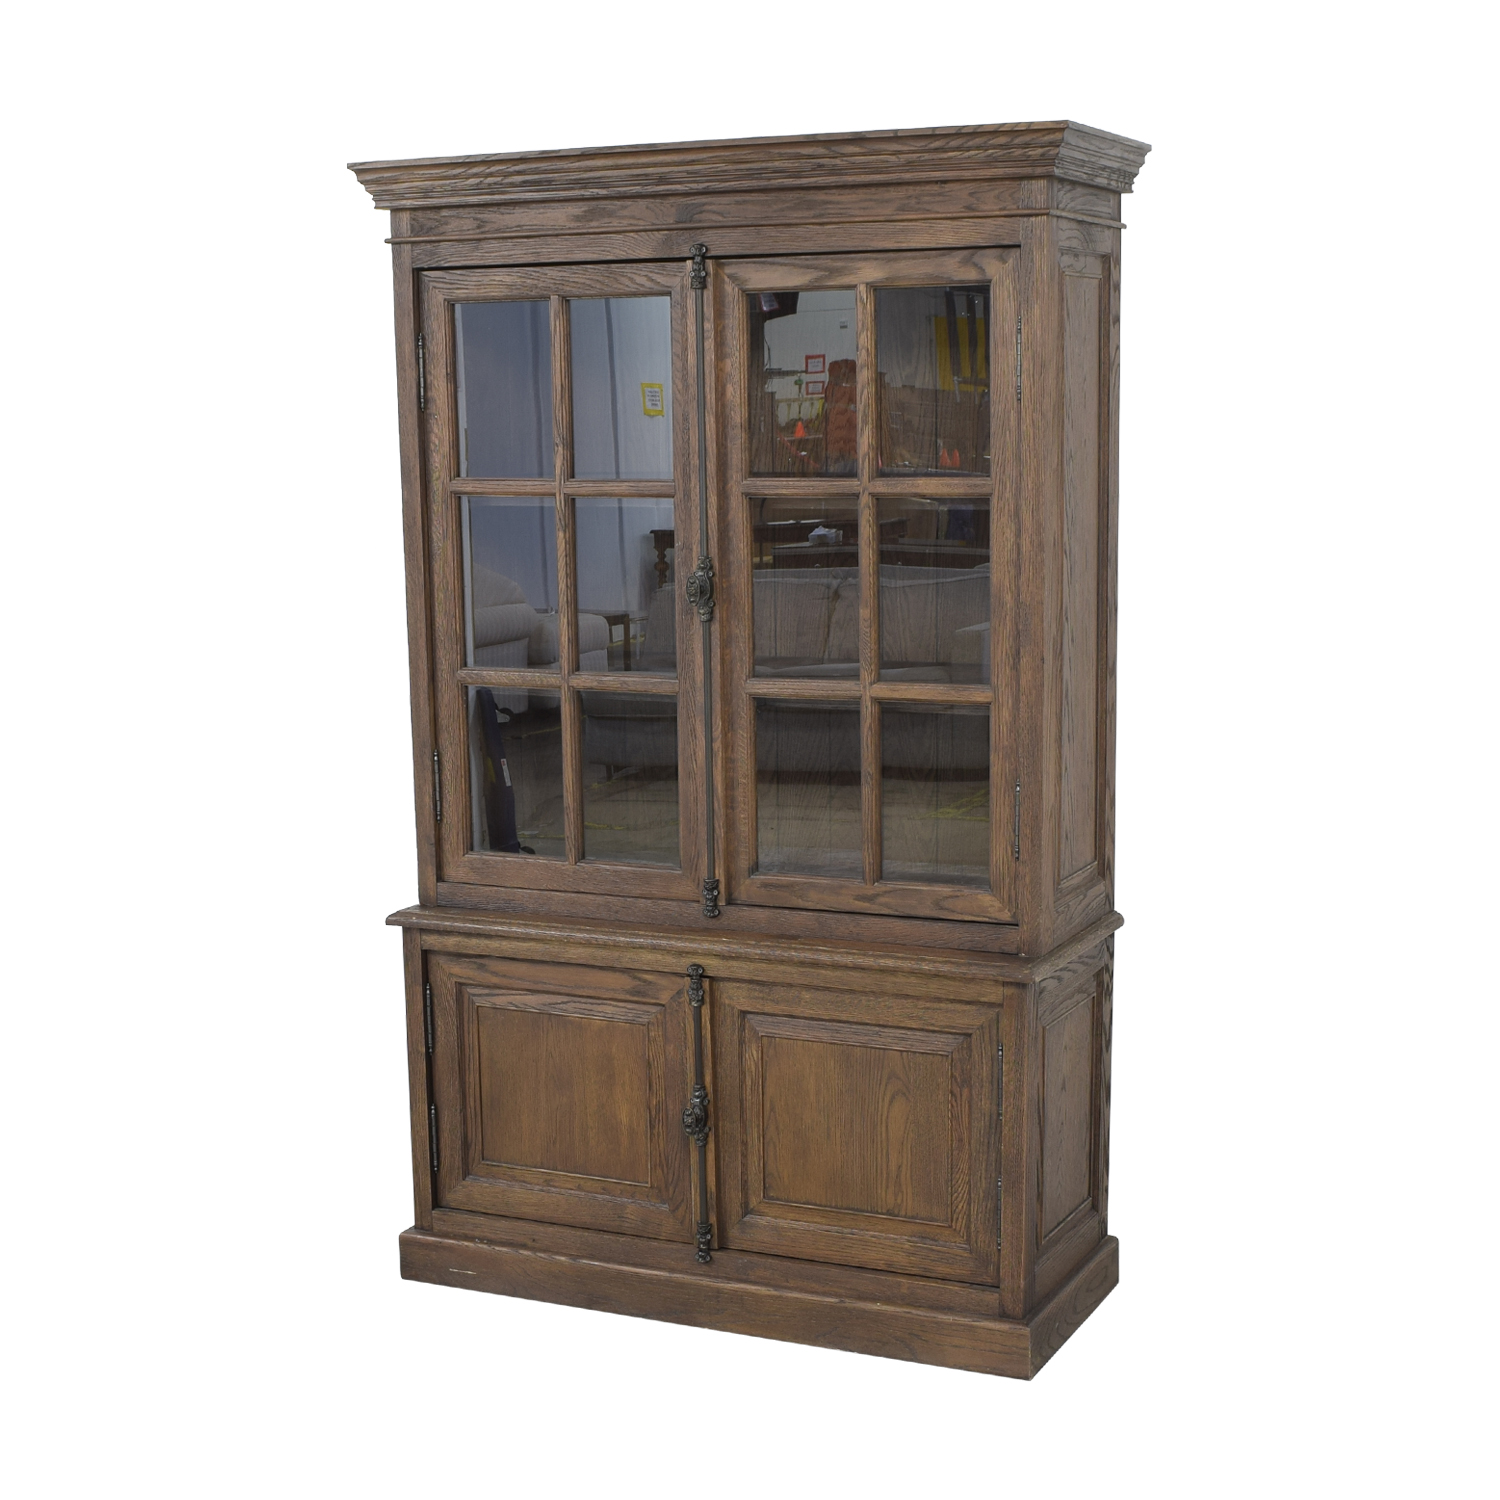 Restoration Hardware Restoration Hardware Display Cabinet discount